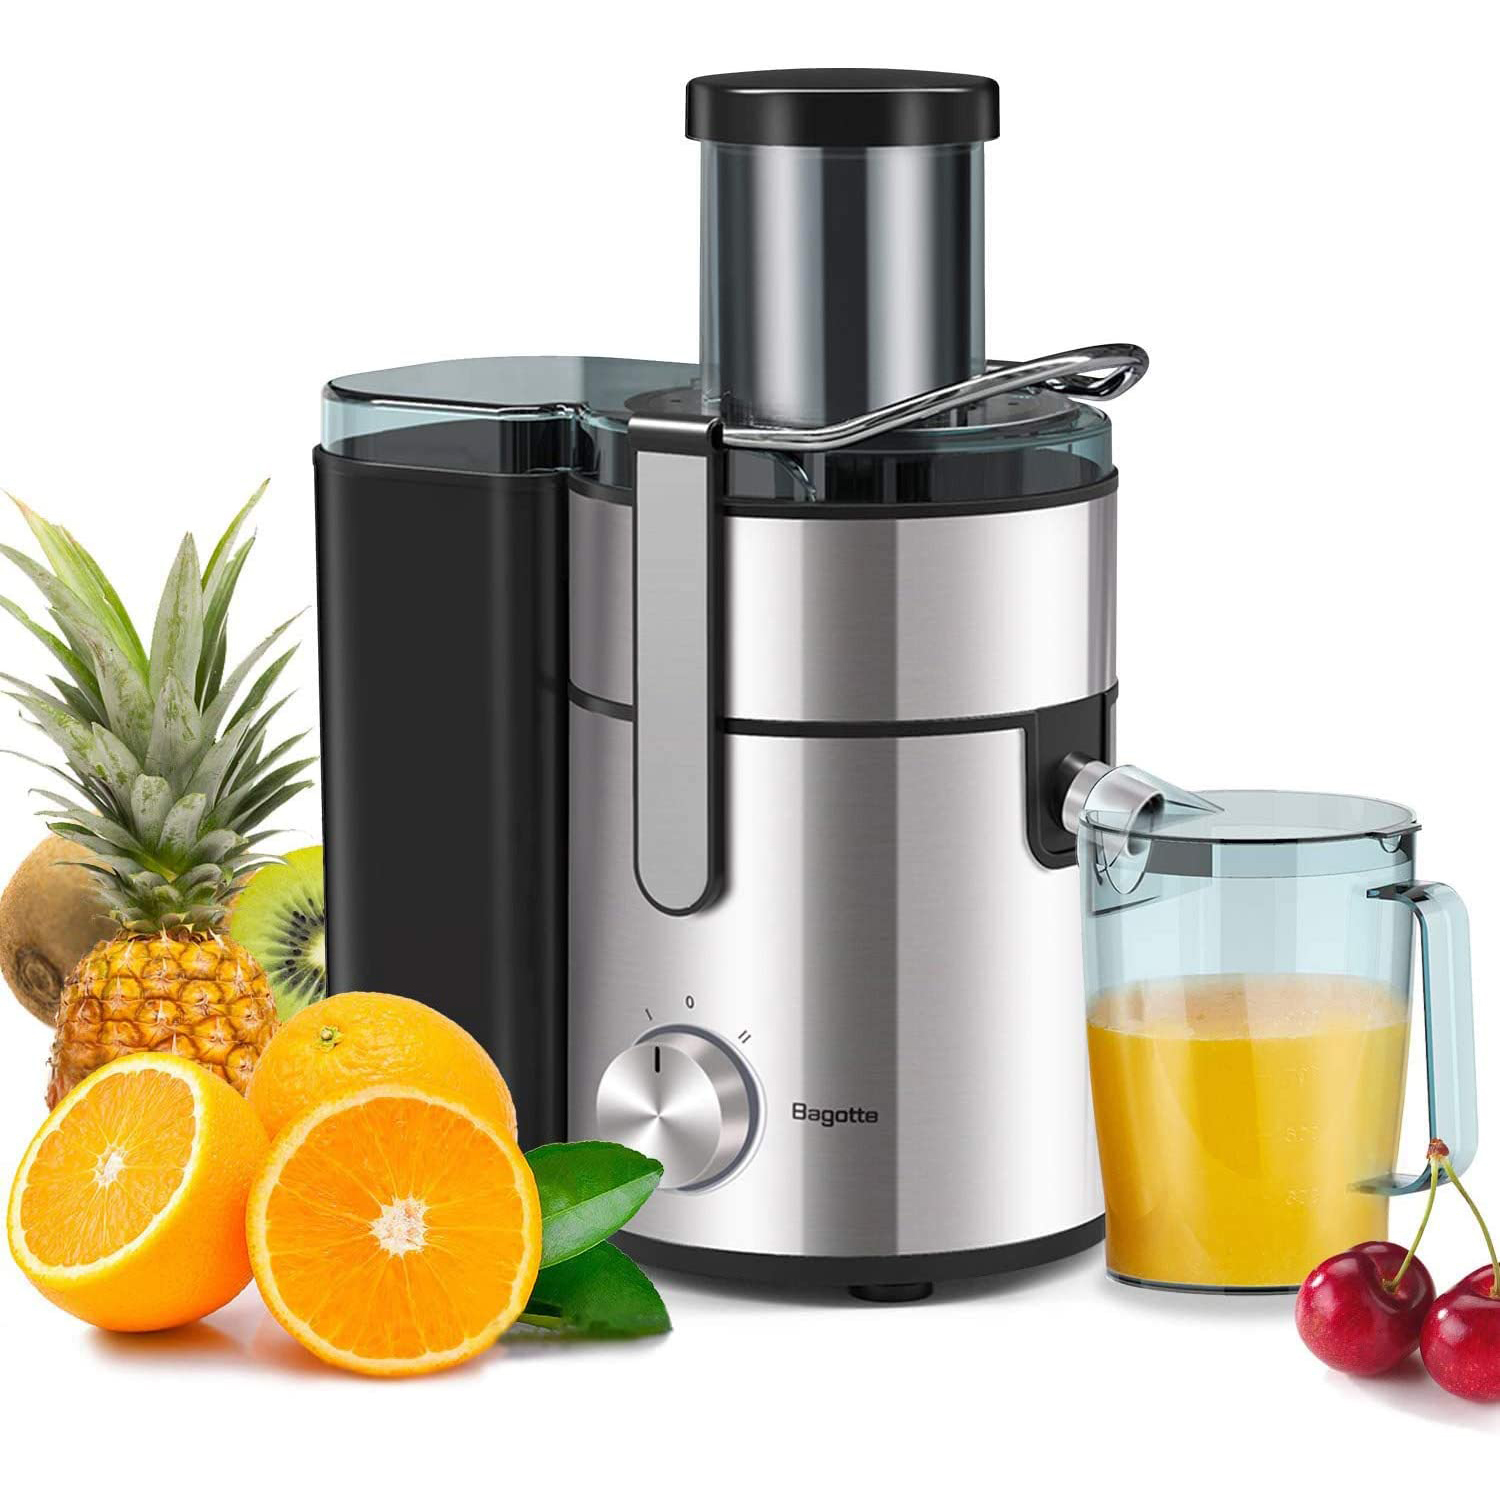 Bagotte DB-002 Juicer